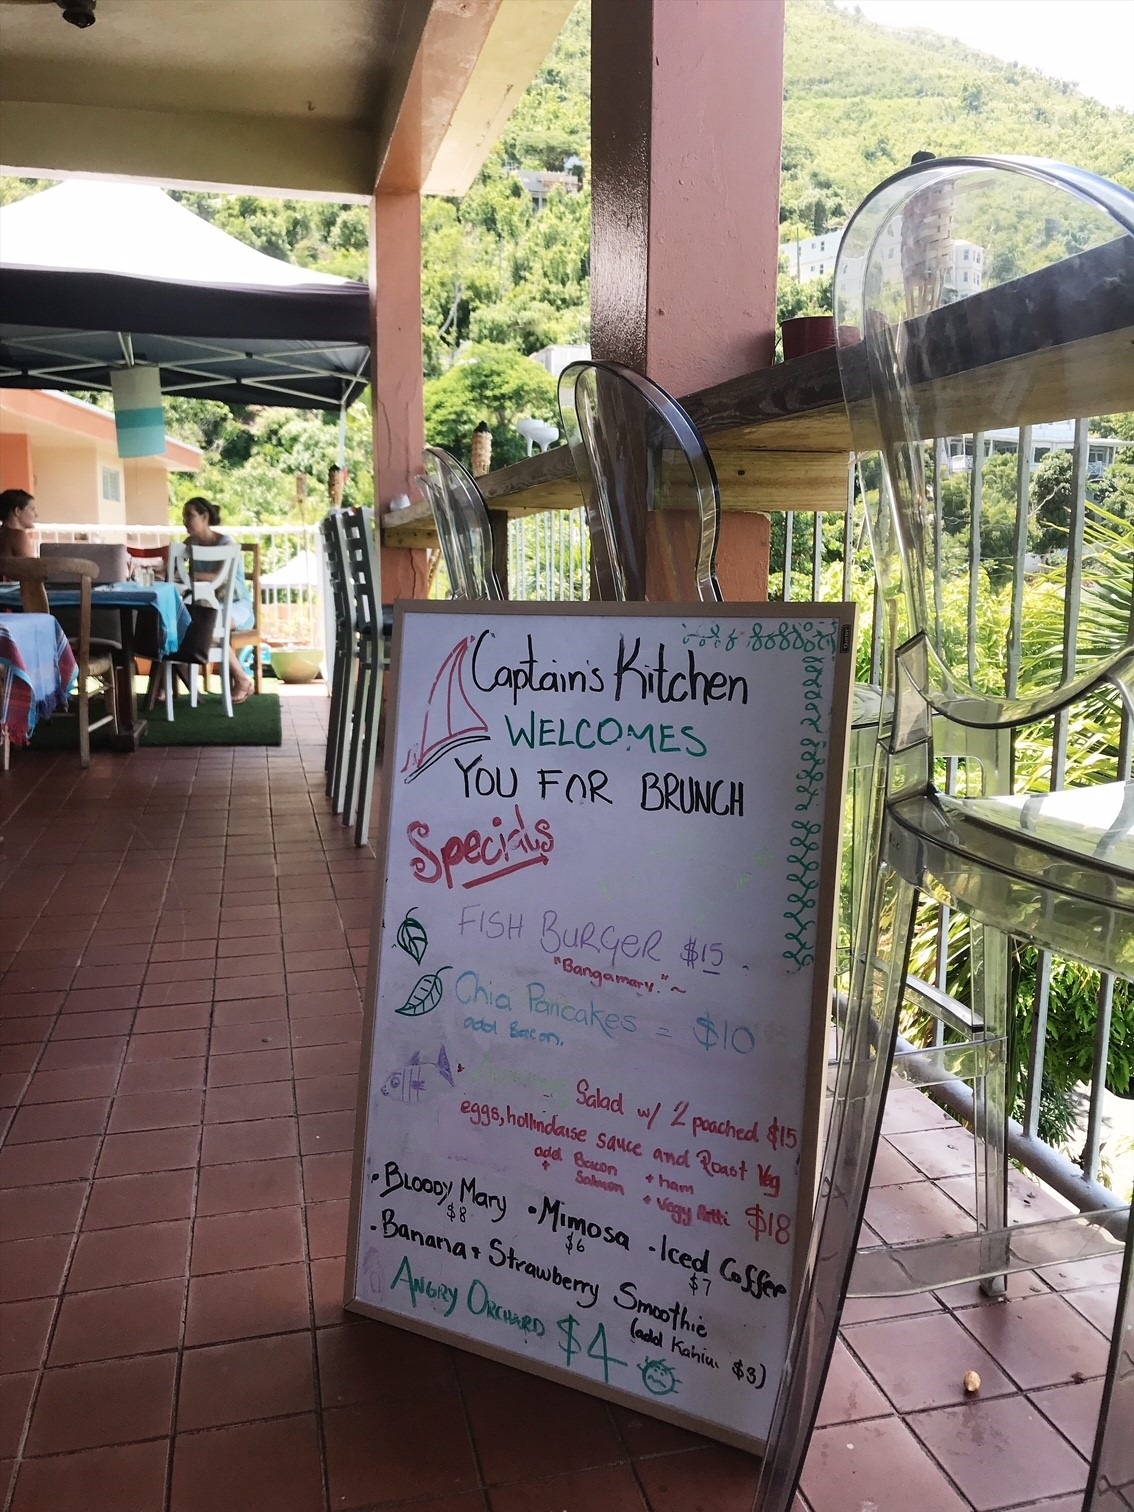 Brunch at Captain's Kitchen BVI - checking out the specials